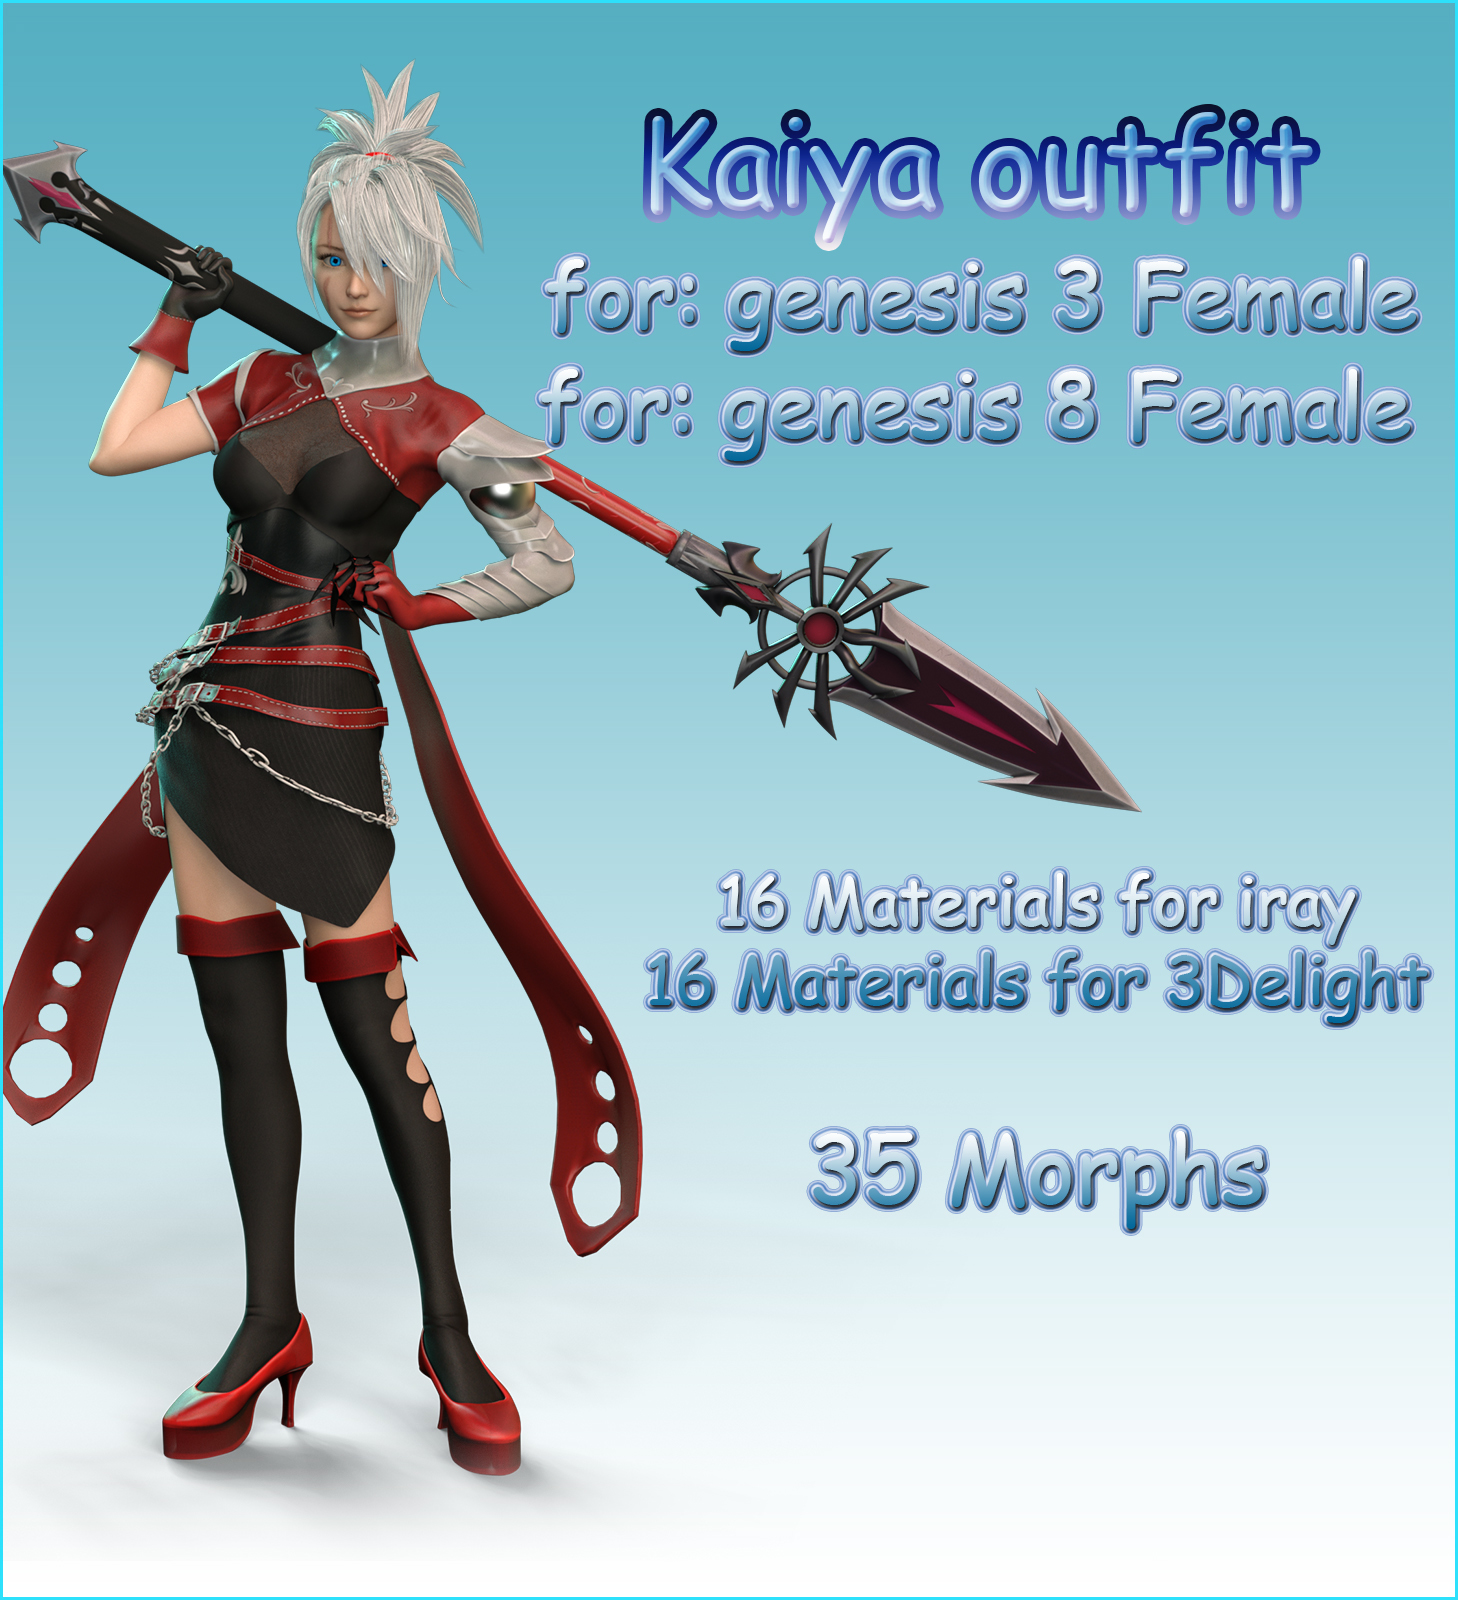 Kaiya outfit for g3f g8f